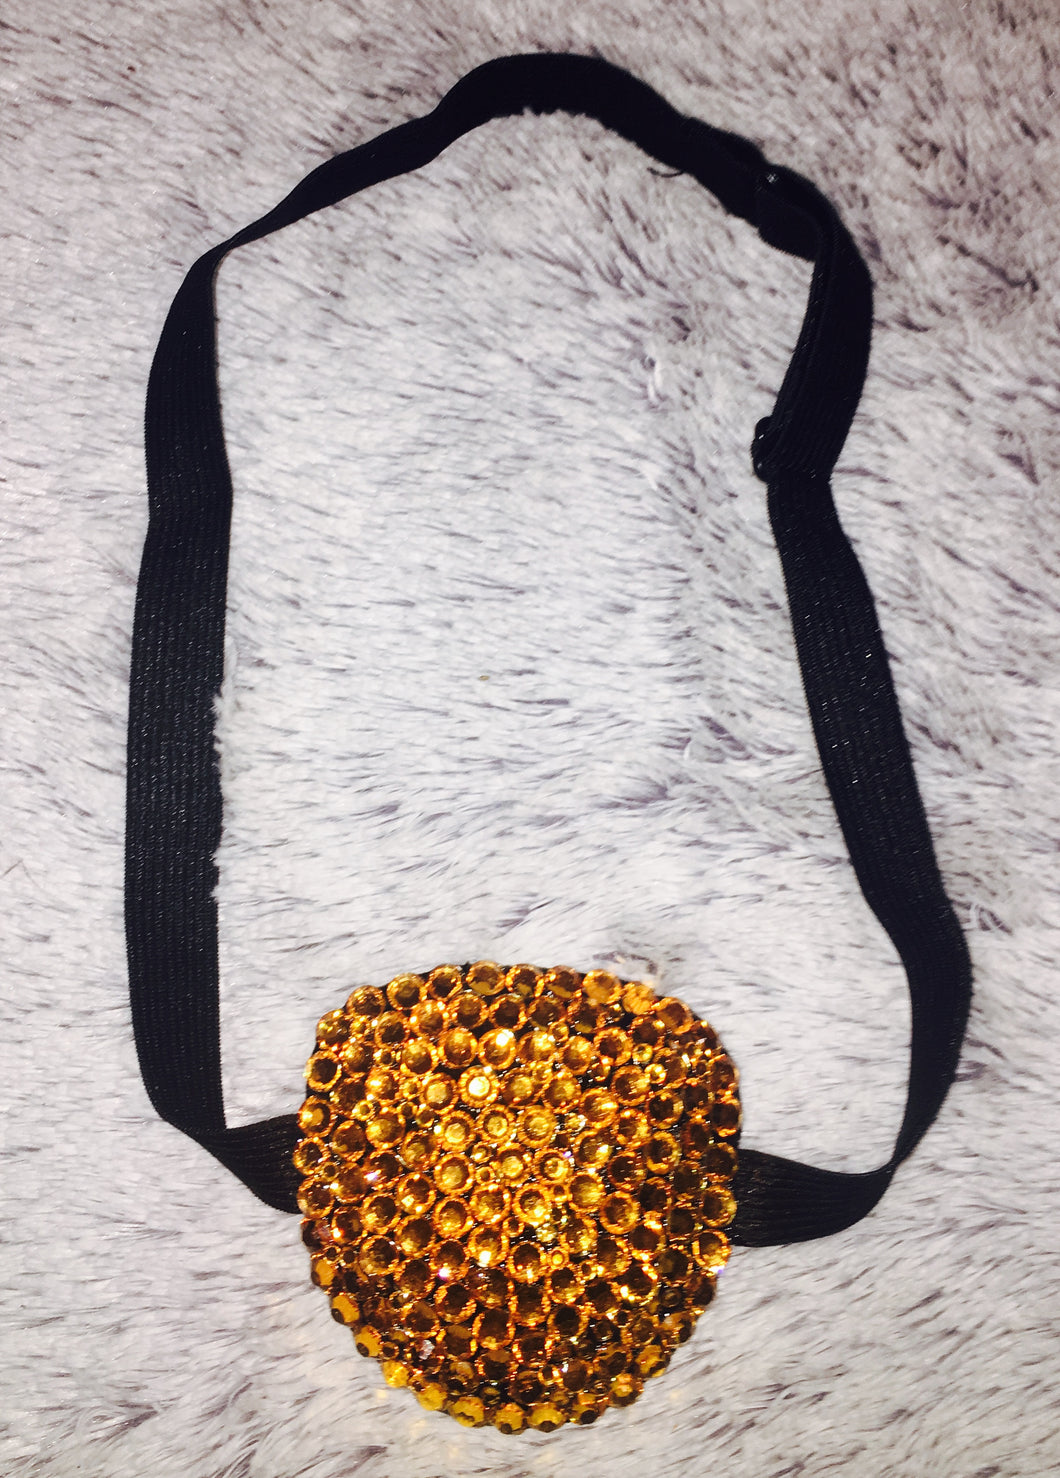 Black Padded Medical Patch In Topaz Gold Crystal Bedazzled Eye Patch